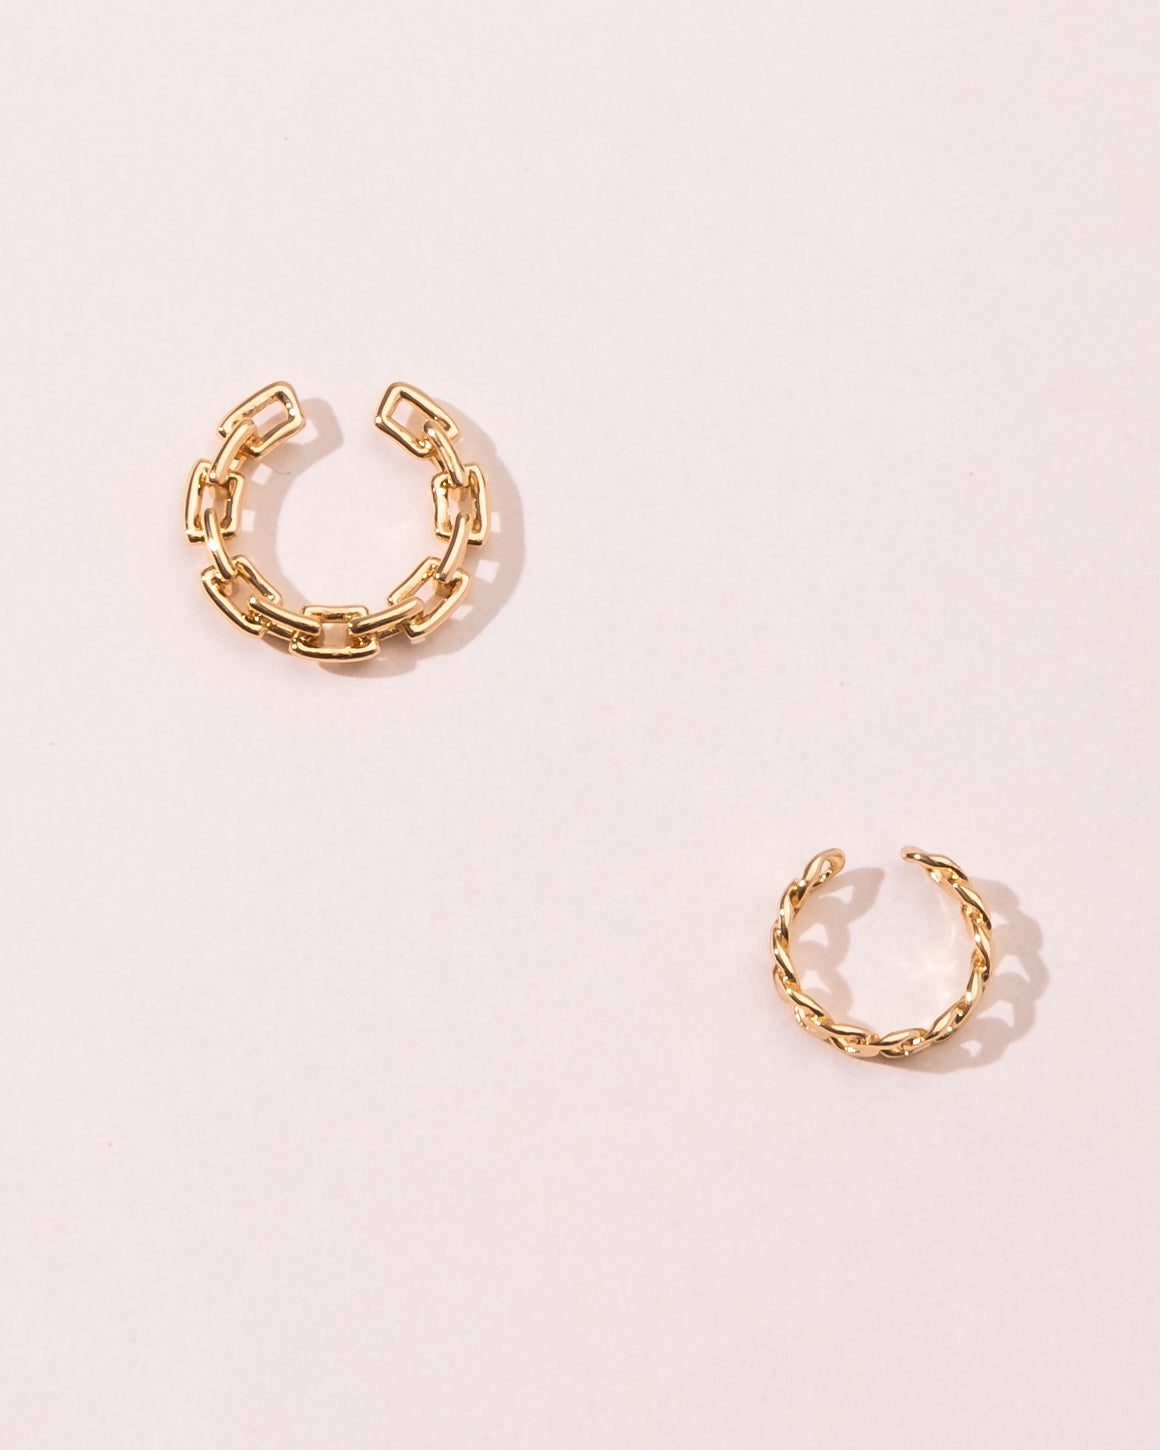 SUMMER HEAT EAR CUFFS